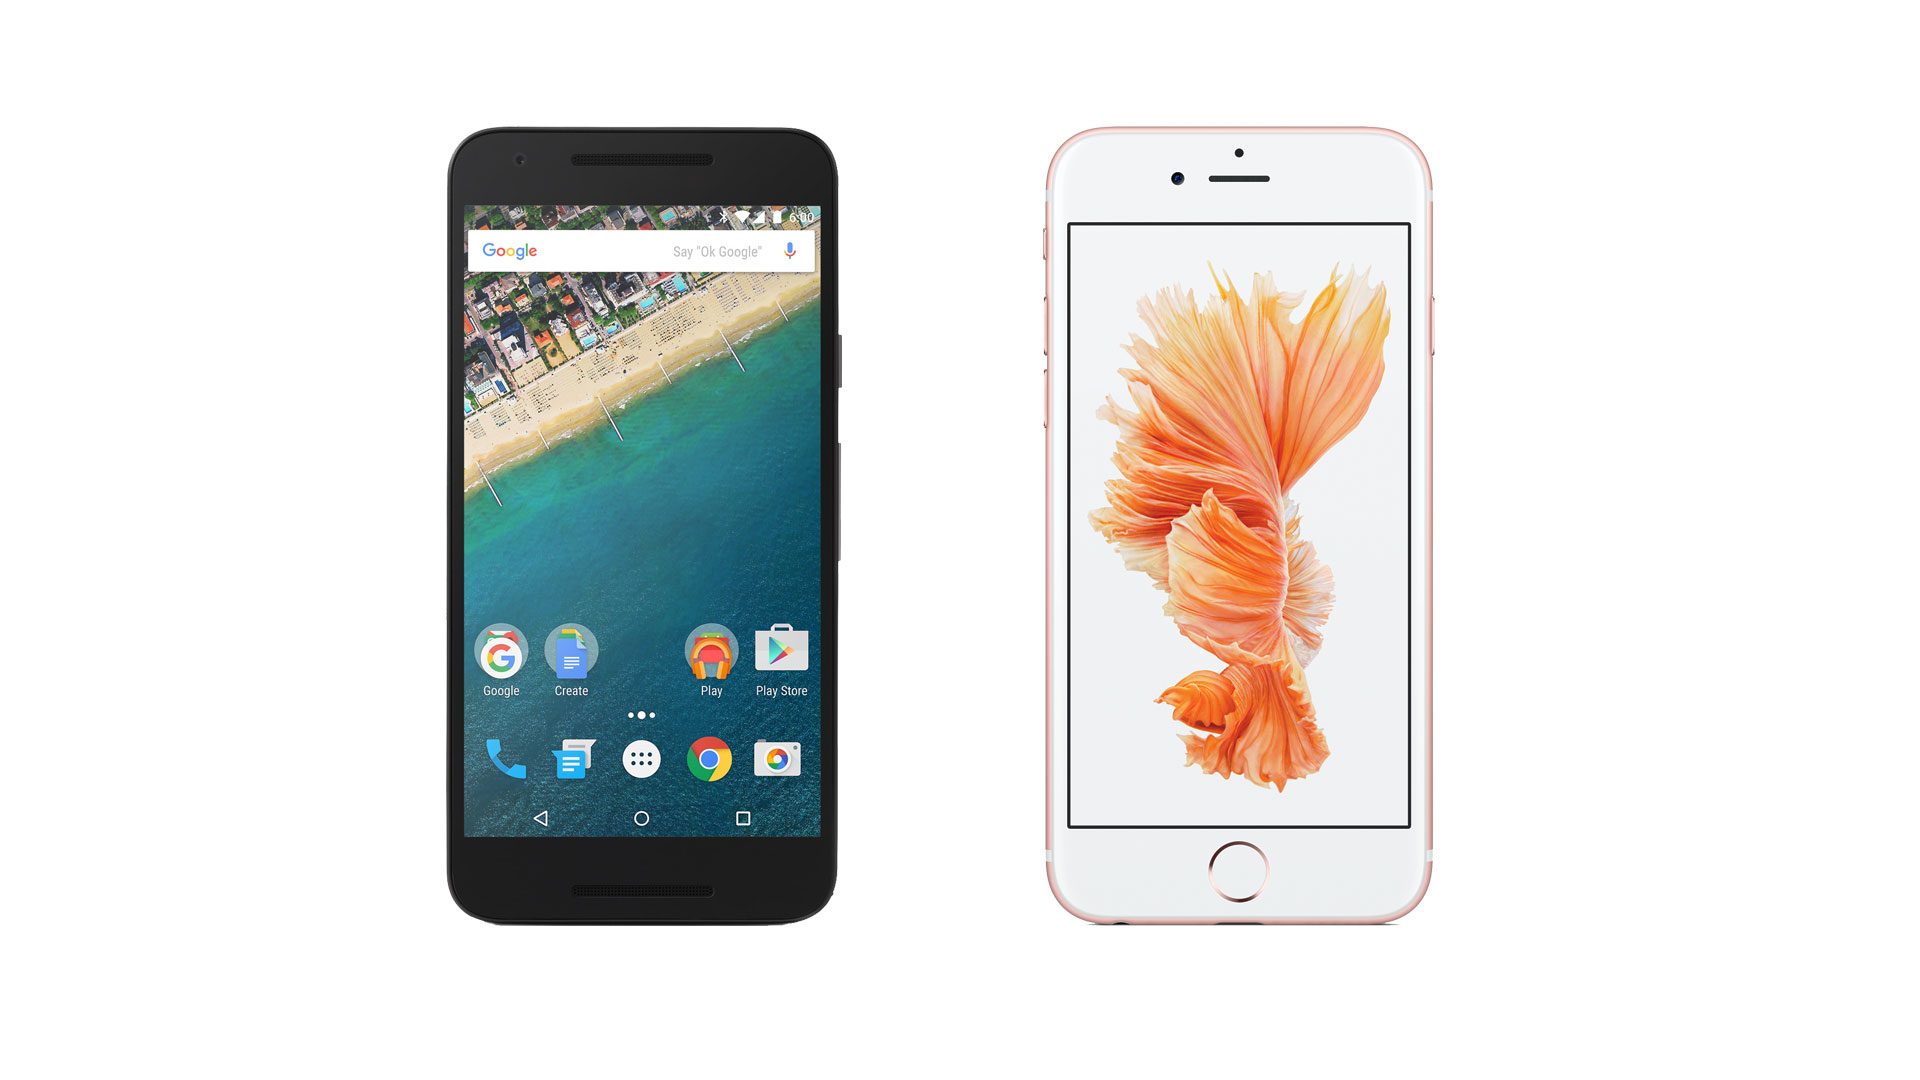 iPhone 6s vs Nexus 5X 1